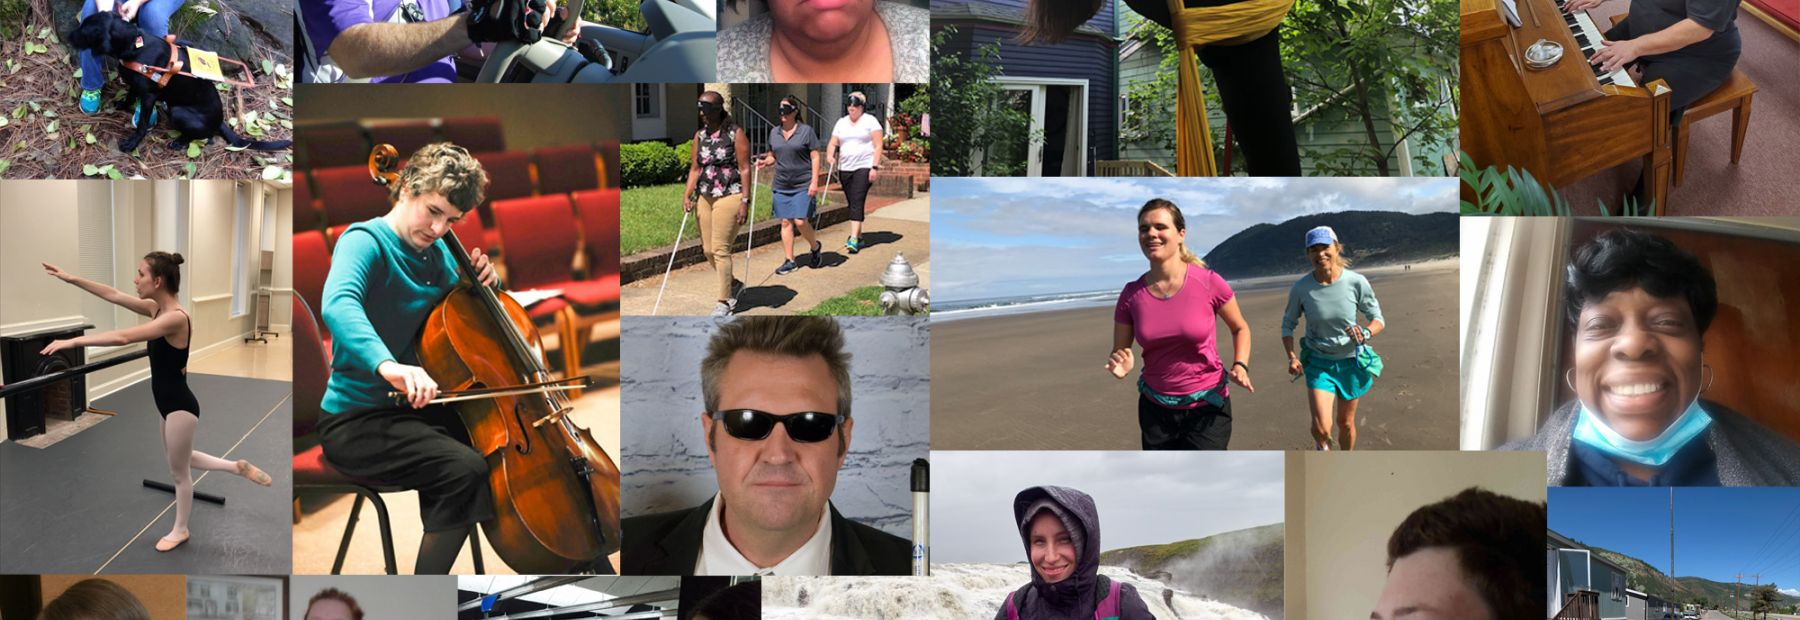 A collage of blind people doing various activities and living the lives they want in honor of Meet the Blind Month.